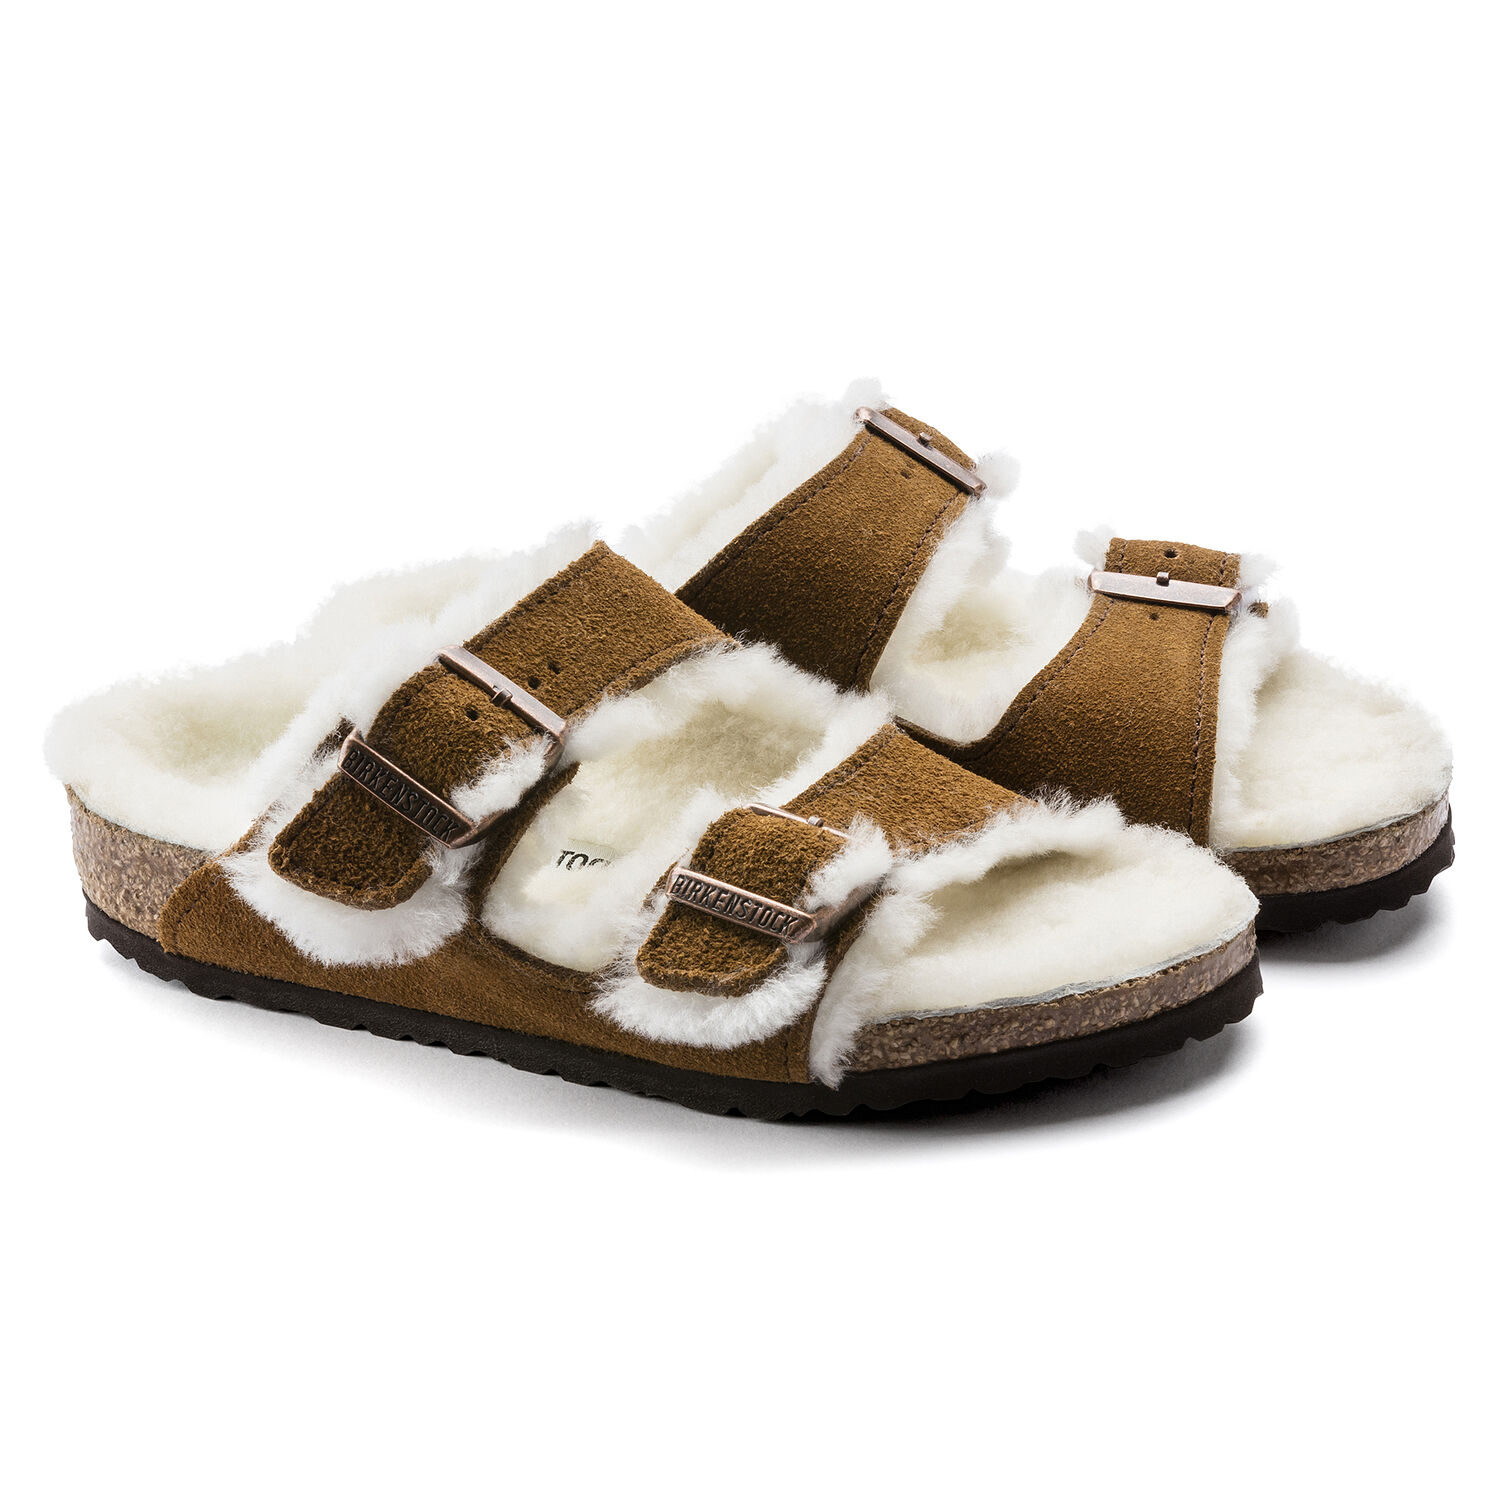 Arizona Shearling Kids Suede Leather